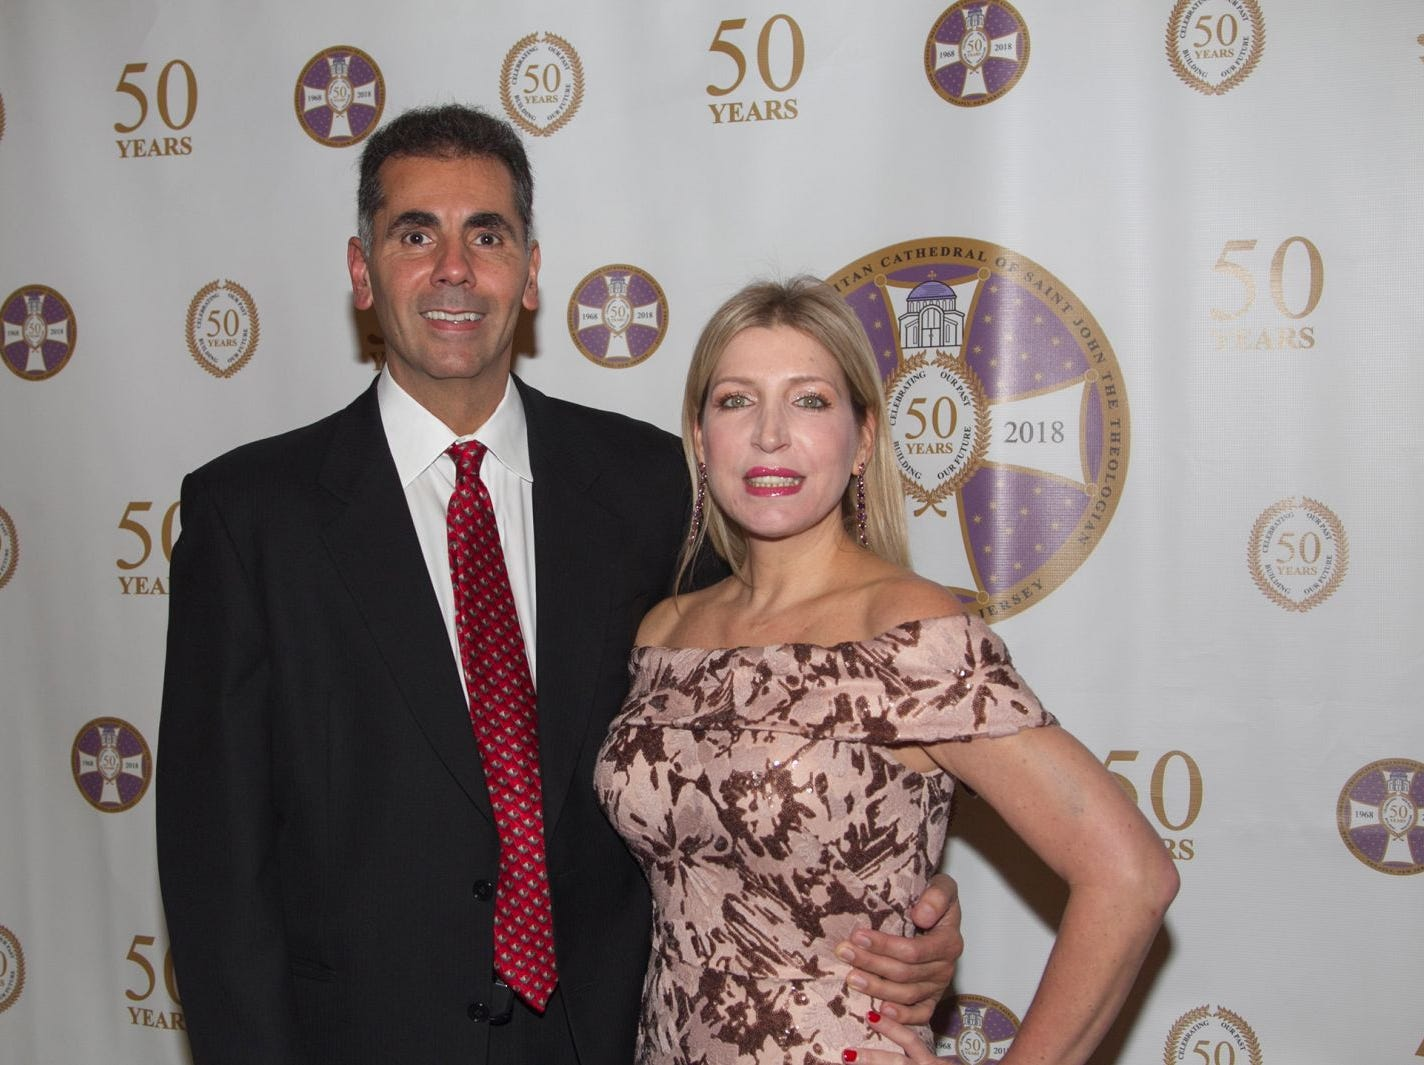 Lambro Demetriades, Marianthi Kefalas. Saint John the Theologian 50th Anniversary gala Dinner at The Venetian in Garfield. 10/04/2018